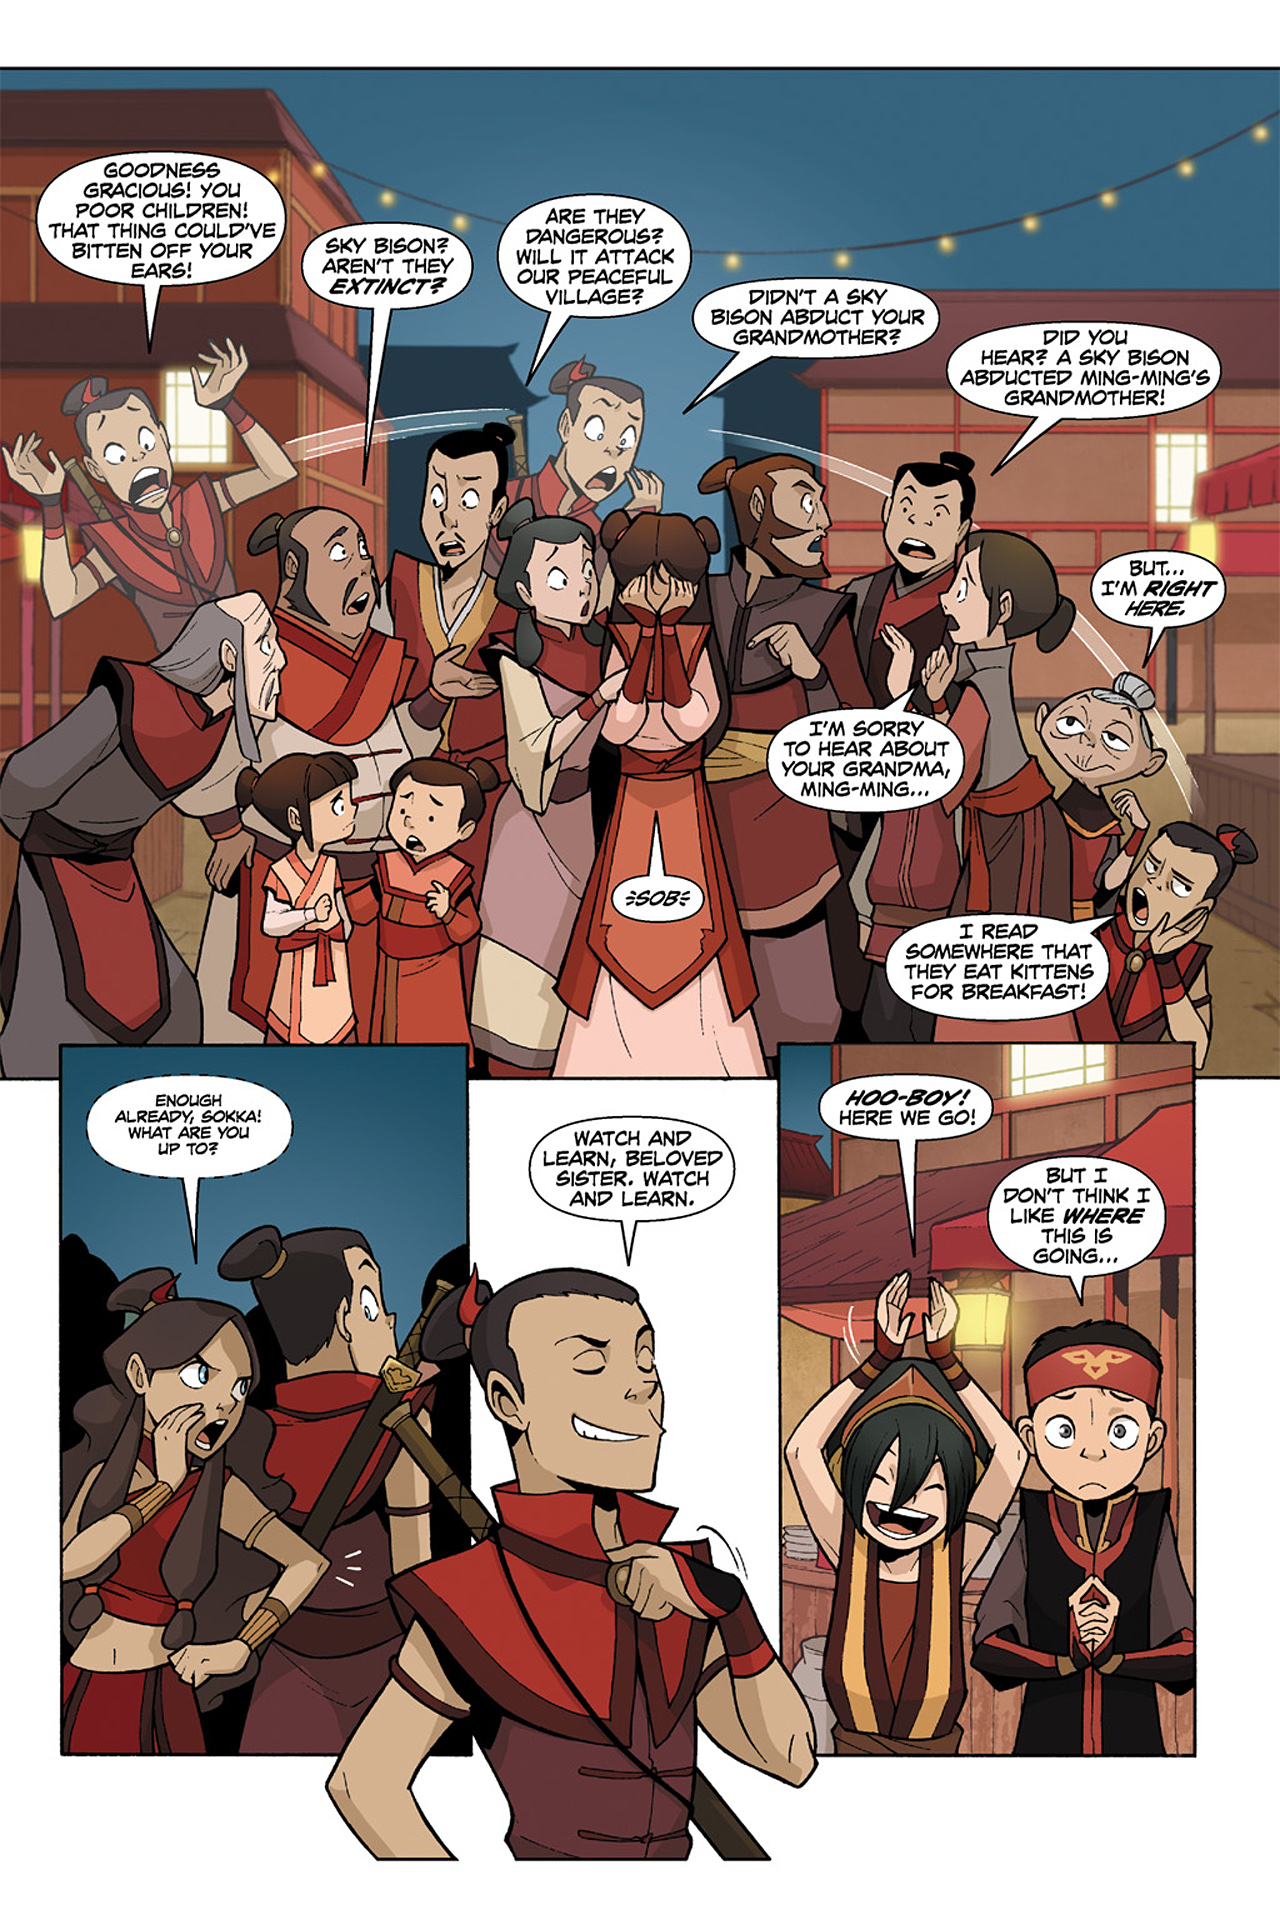 Nickelodeon Avatar: The Last Airbender - The Lost Adventures chap full pic 157